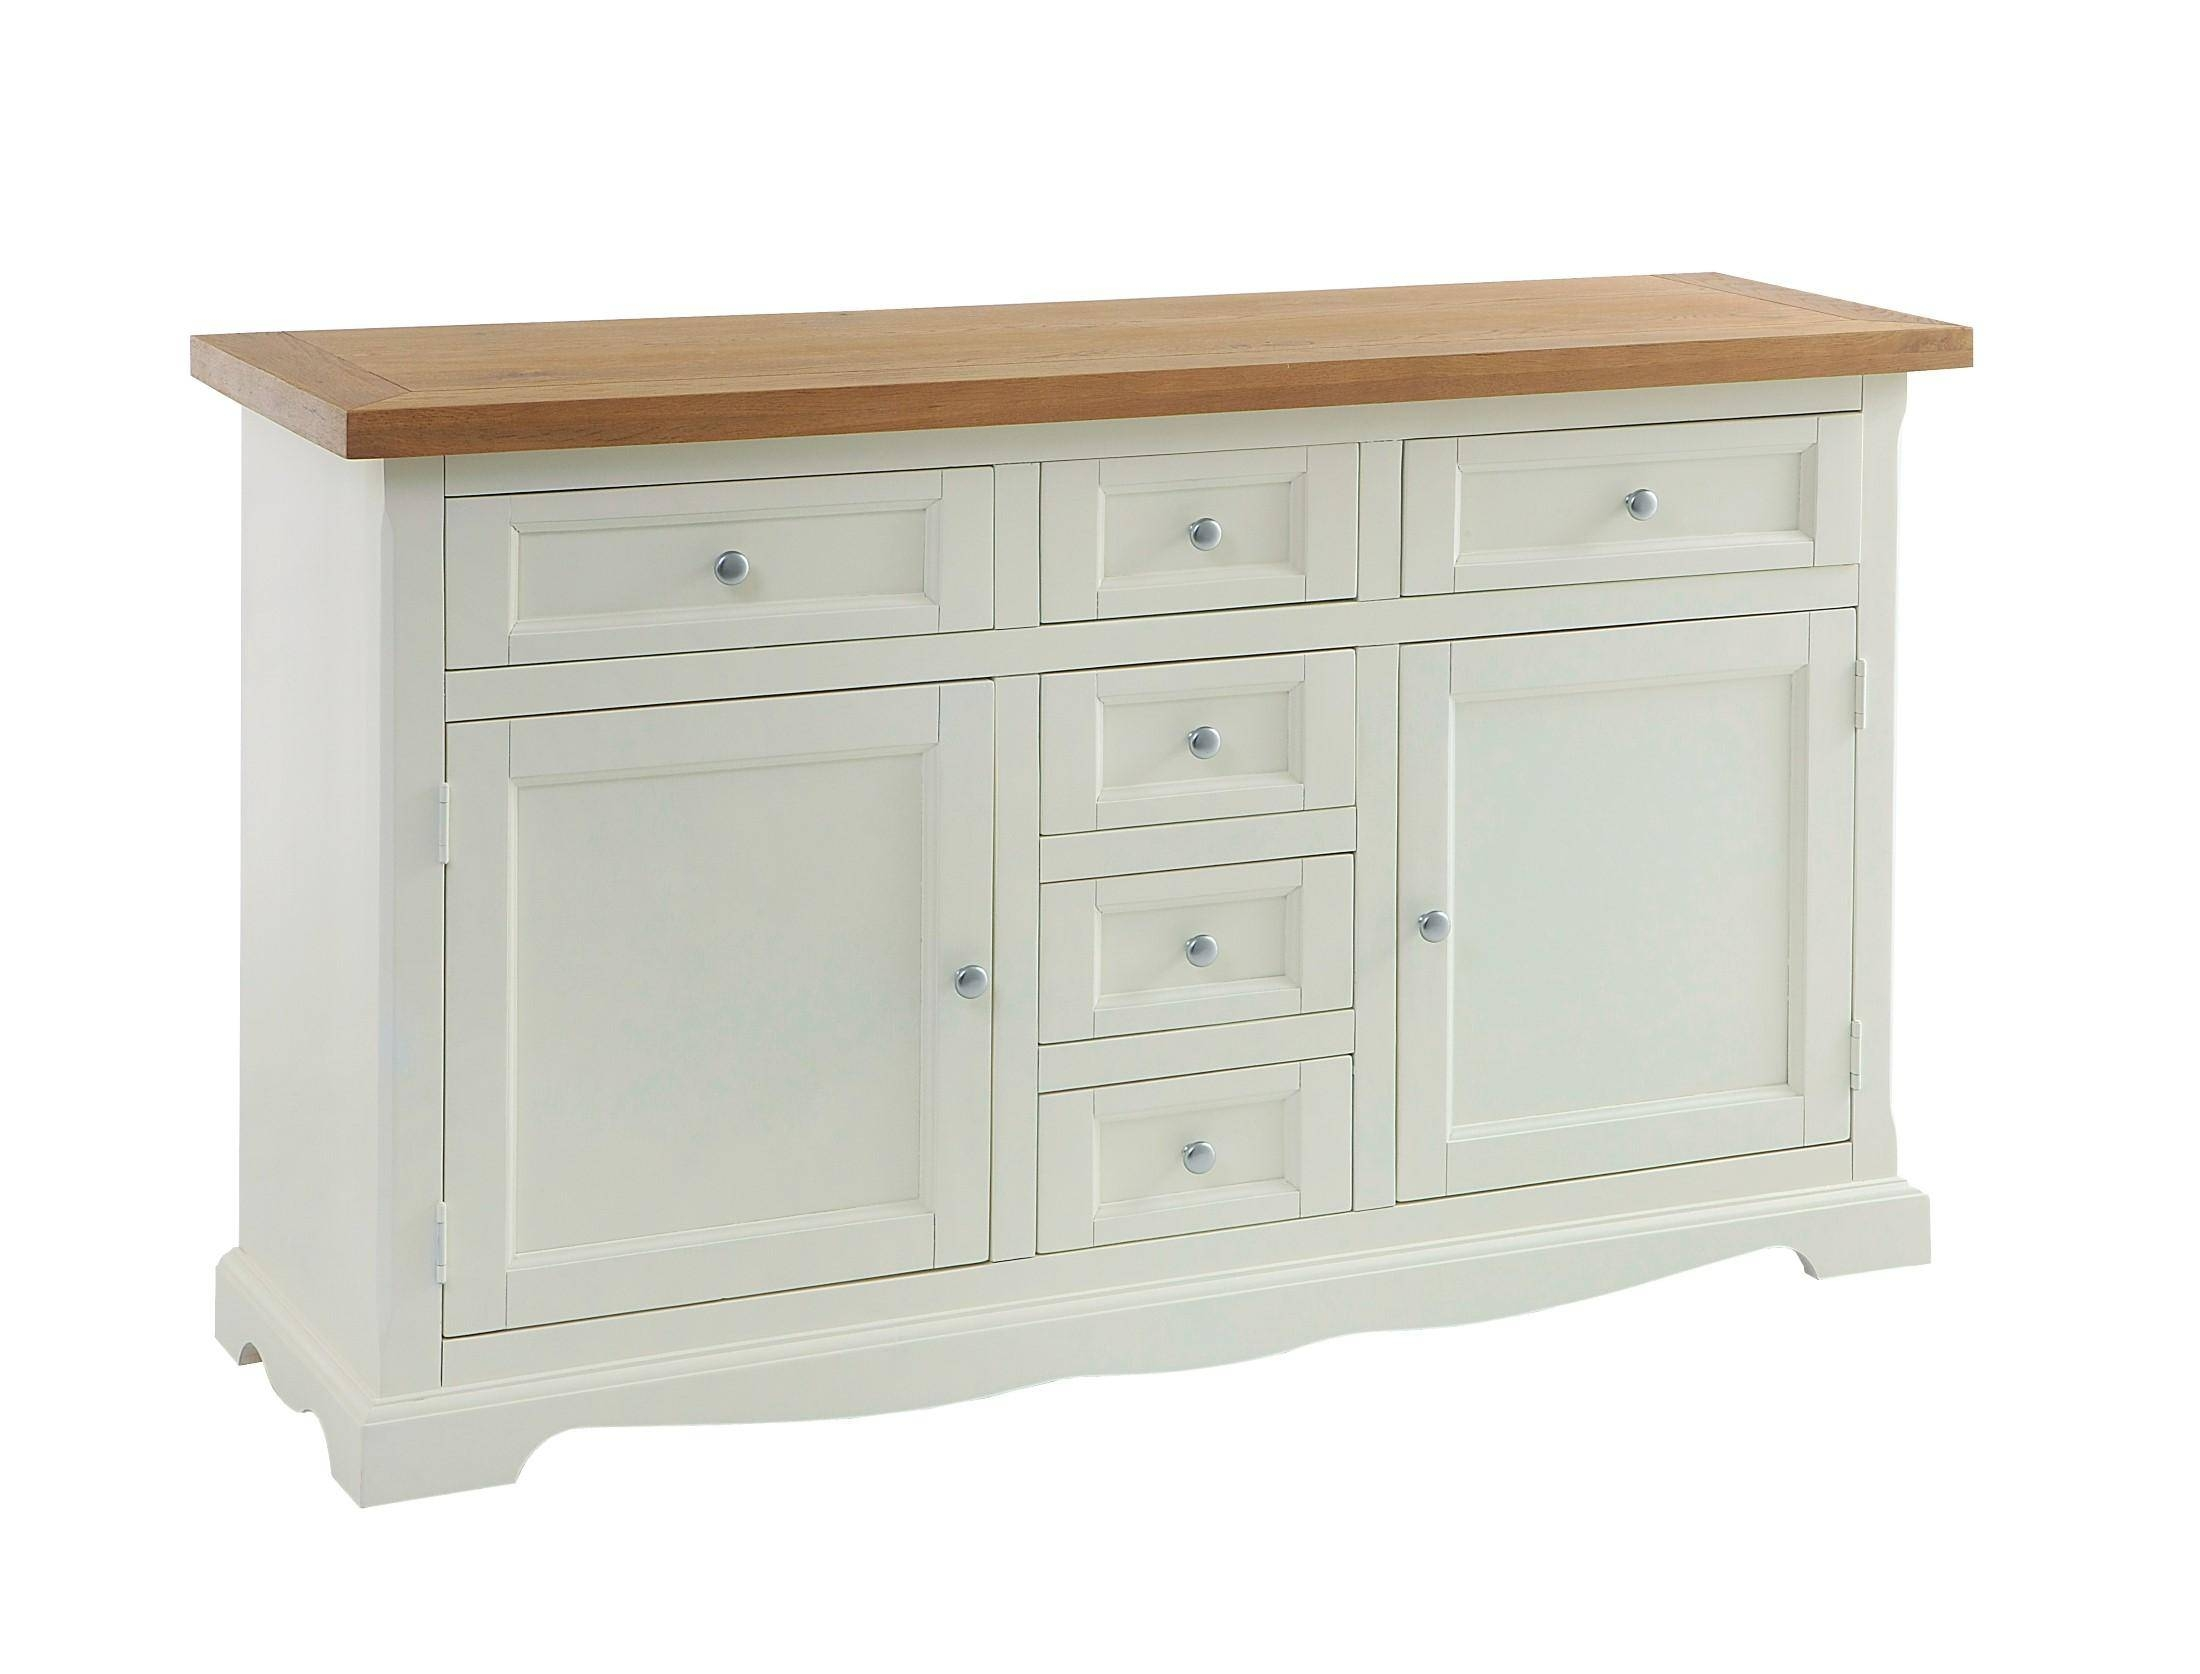 Large Irish Sideboard Cream - Flowerhill Furniture regarding Cream Sideboards (Image 11 of 30)